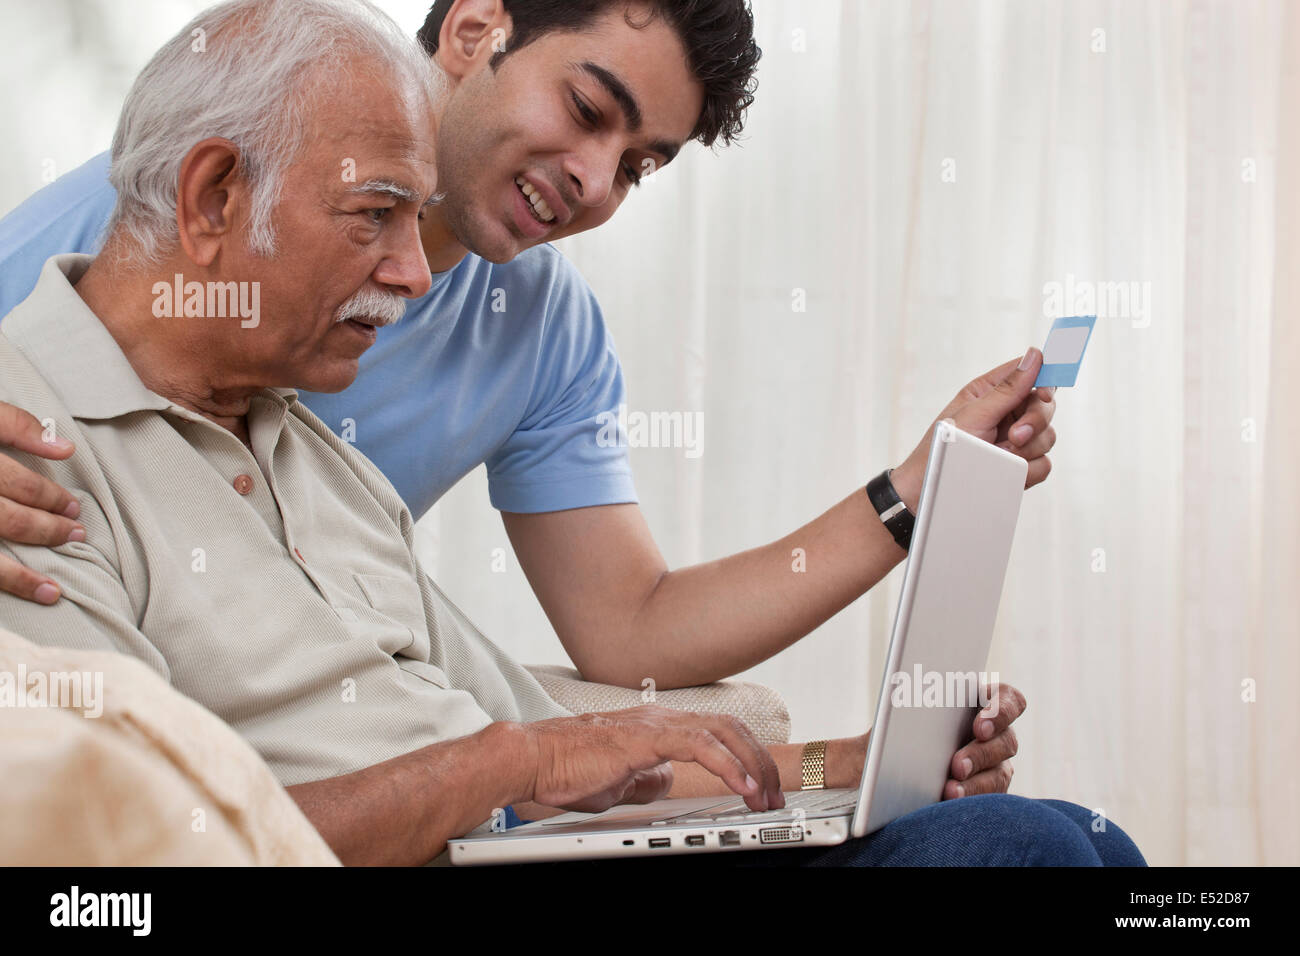 Grandson teaching grandfather how to operate laptop Stock Photo